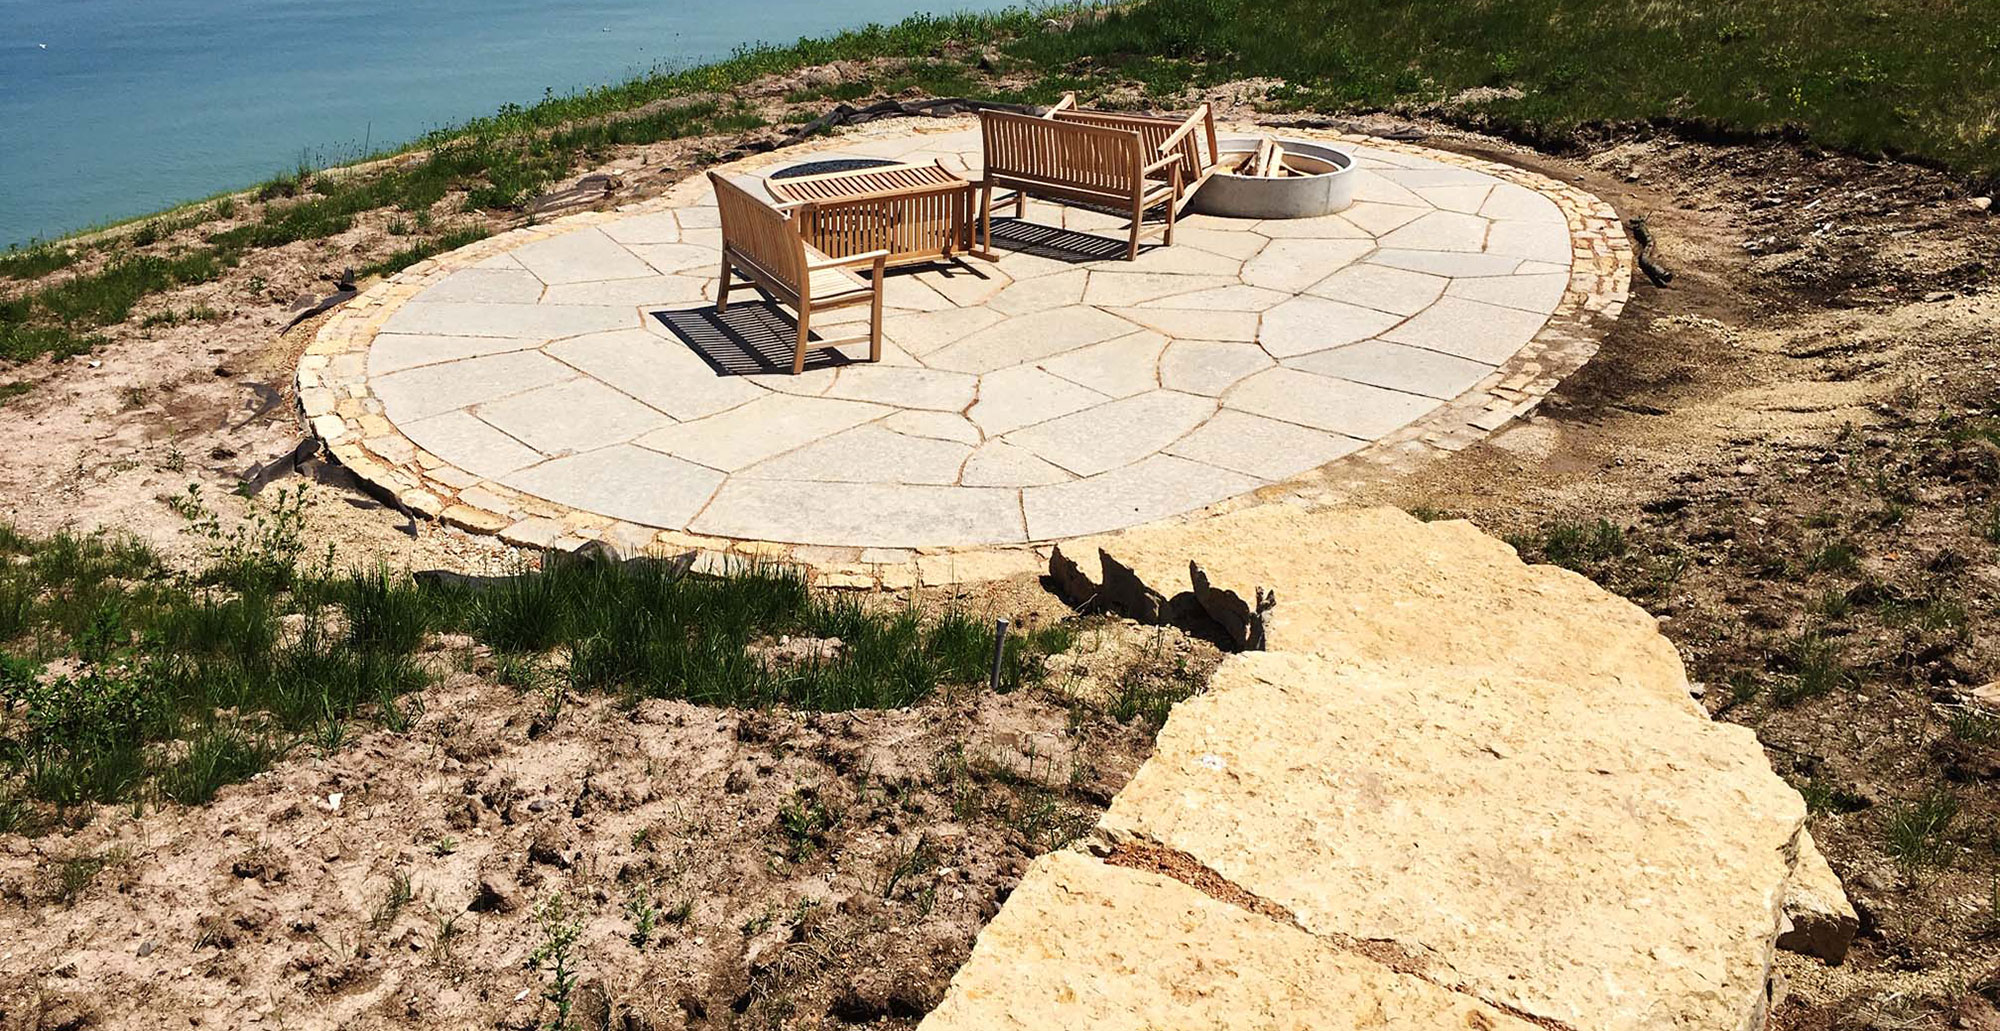 Backyard landscaping outdoor living decor fire pit ... on Living Room Fire Pit id=30017